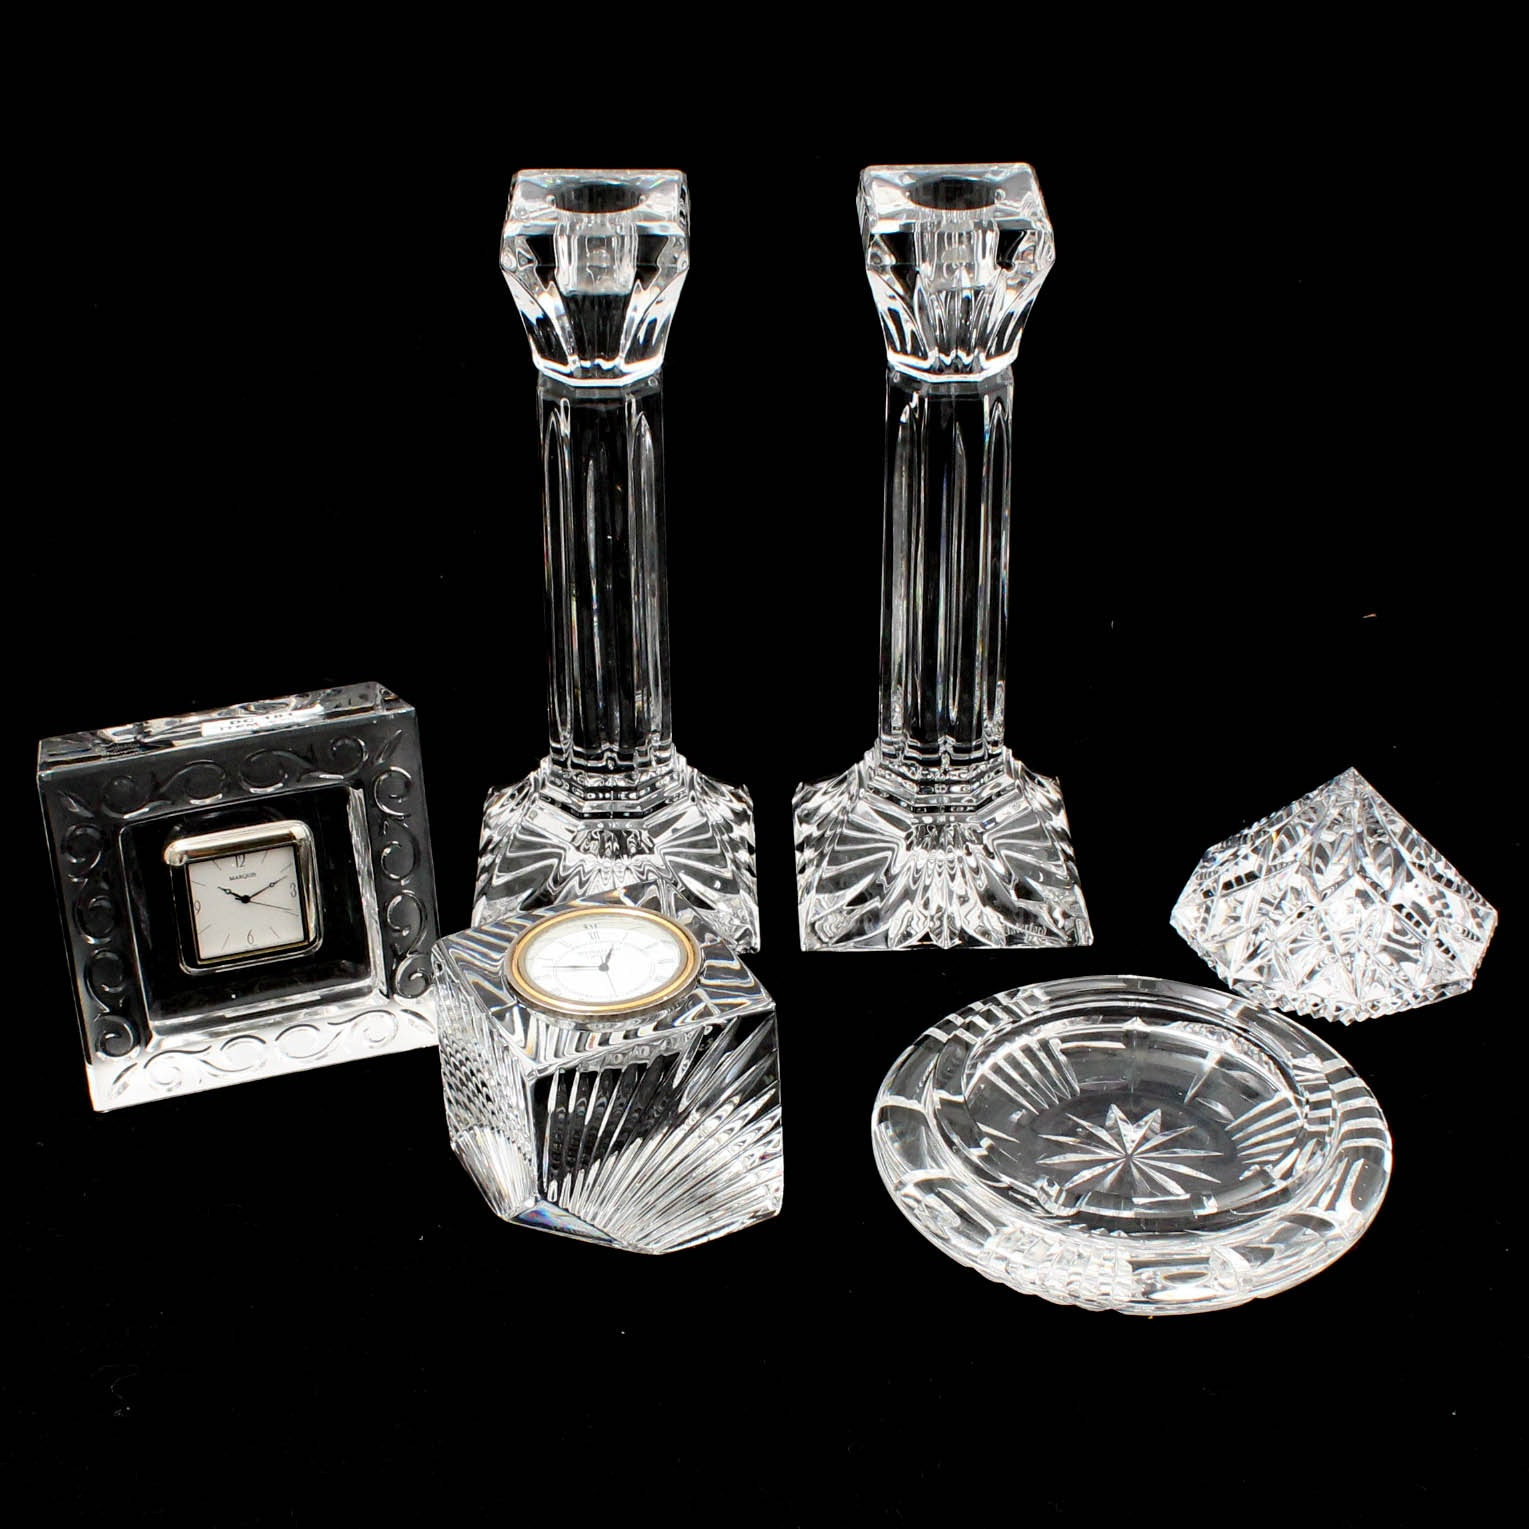 """Waterford Crystal """"Lismore"""" Candlesticks, Clocks, Paperweight, and Ashtray"""